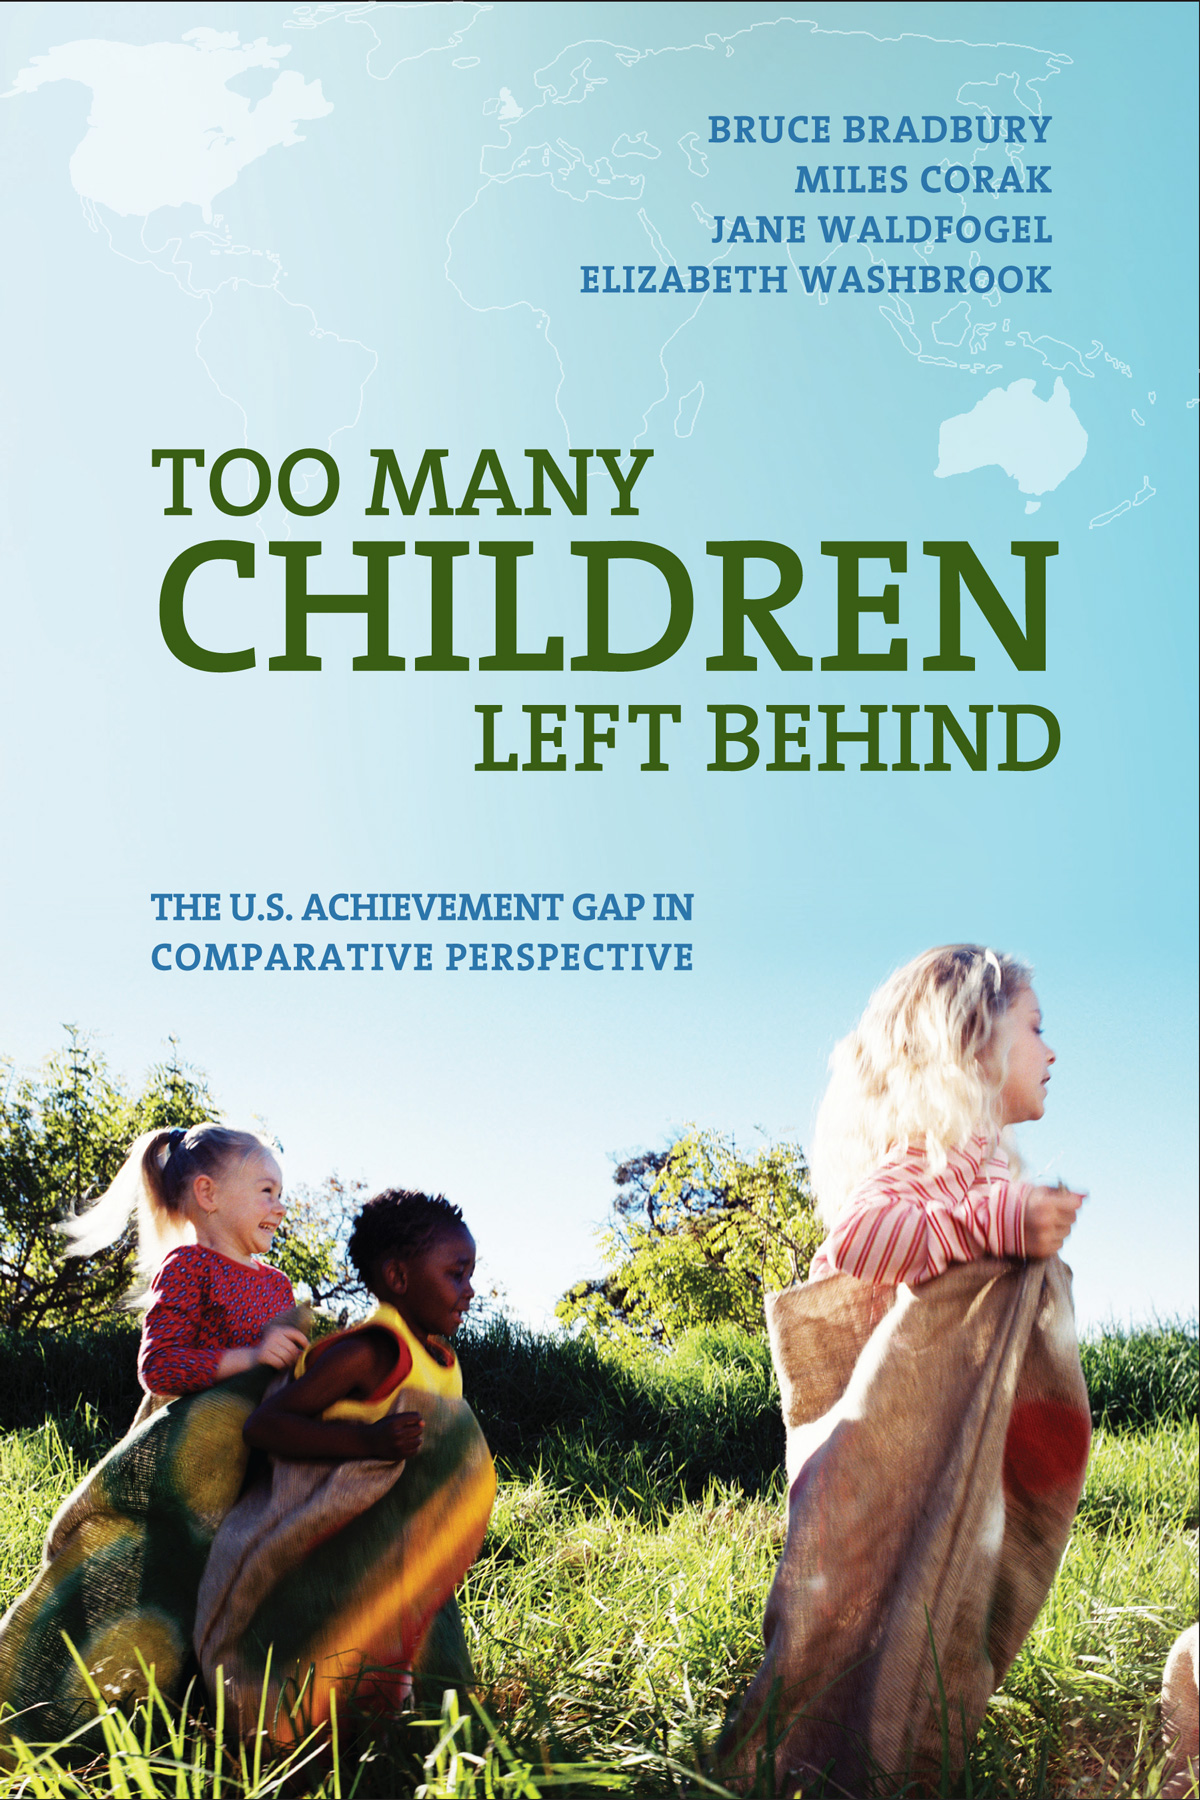 no child left behind essay conclusion The executive summary of the no child left behind act of 2001 provides a quick overview of its provisions.